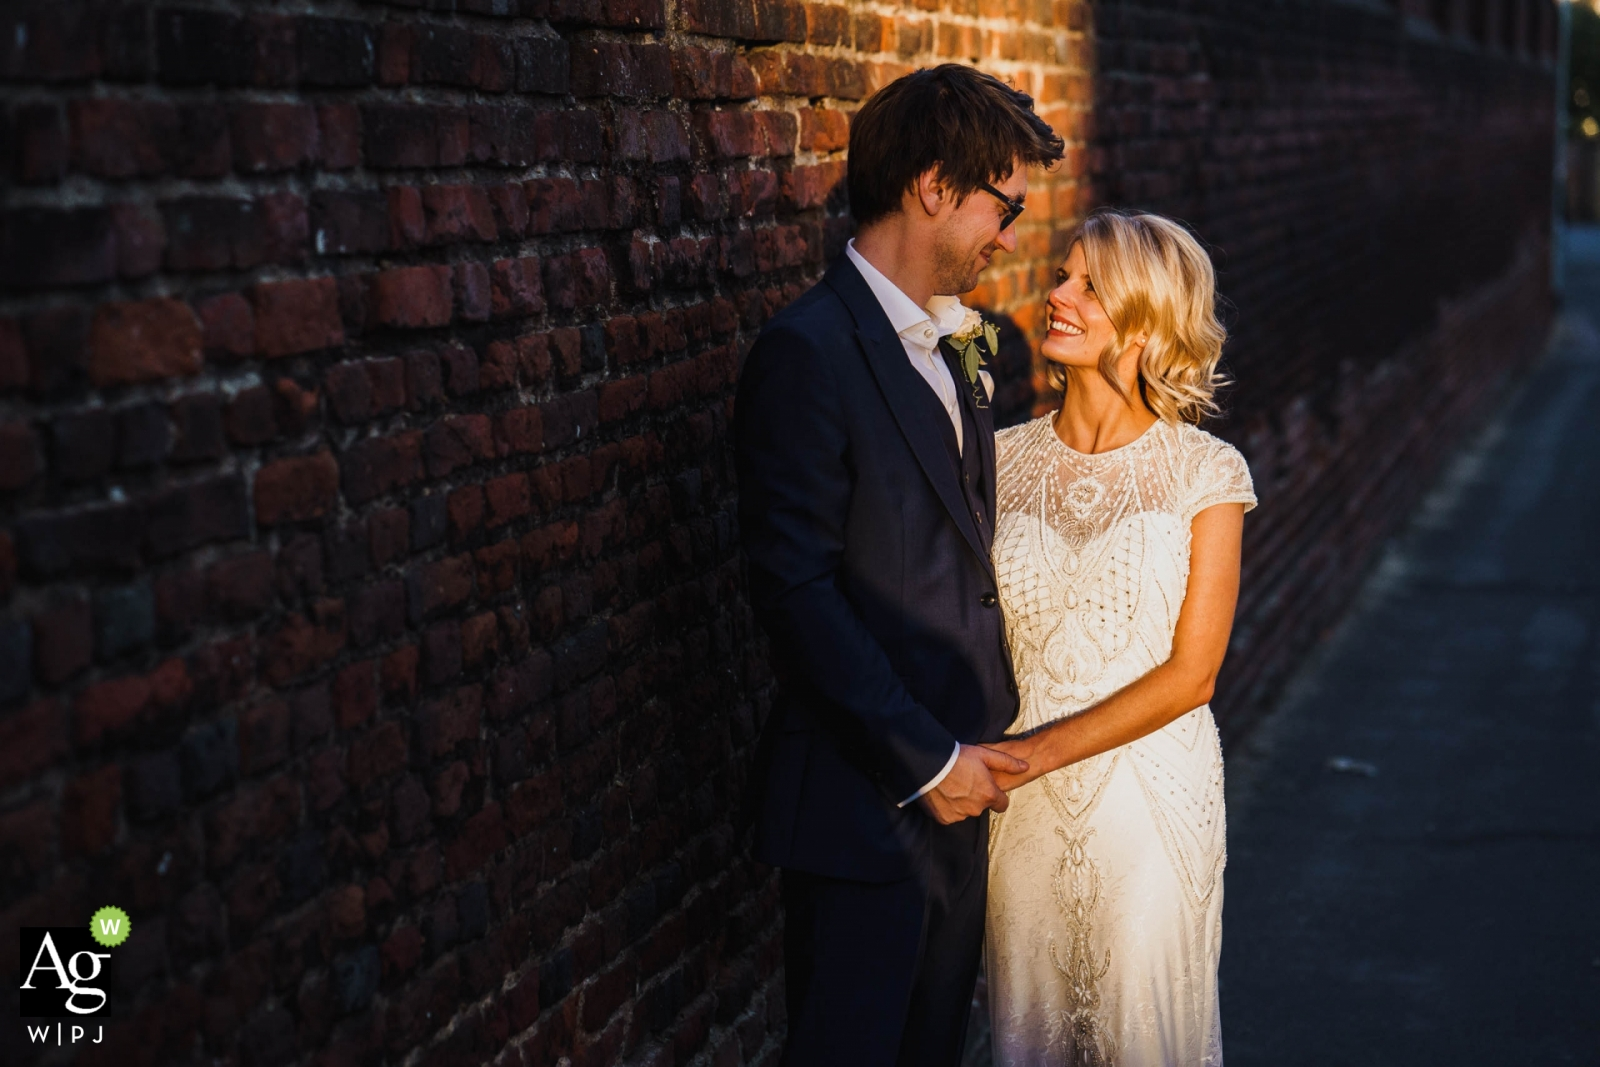 artistic wedding pictures of a Norfolk bride and groom in sunlight against brick wall in alley